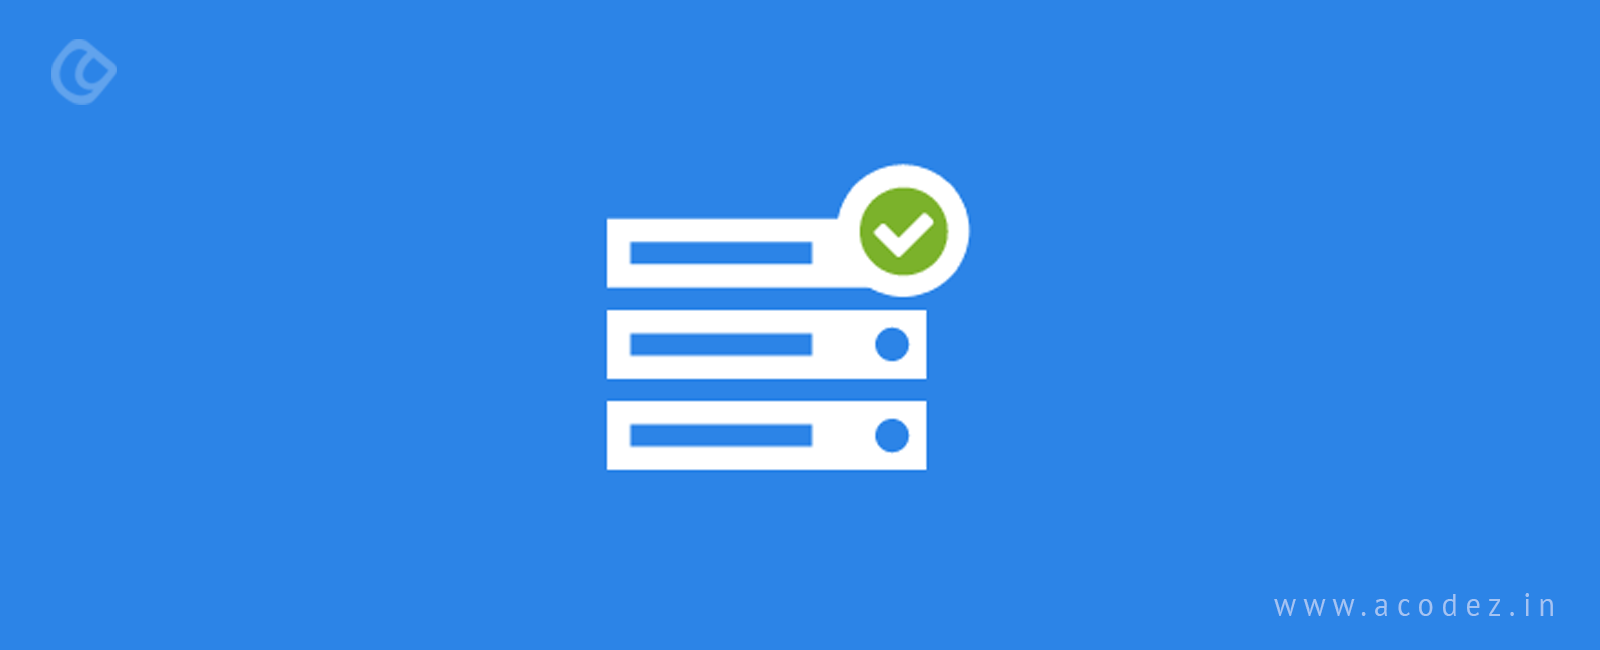 16 Top Website Quality Assurance Checklist for Web Developers